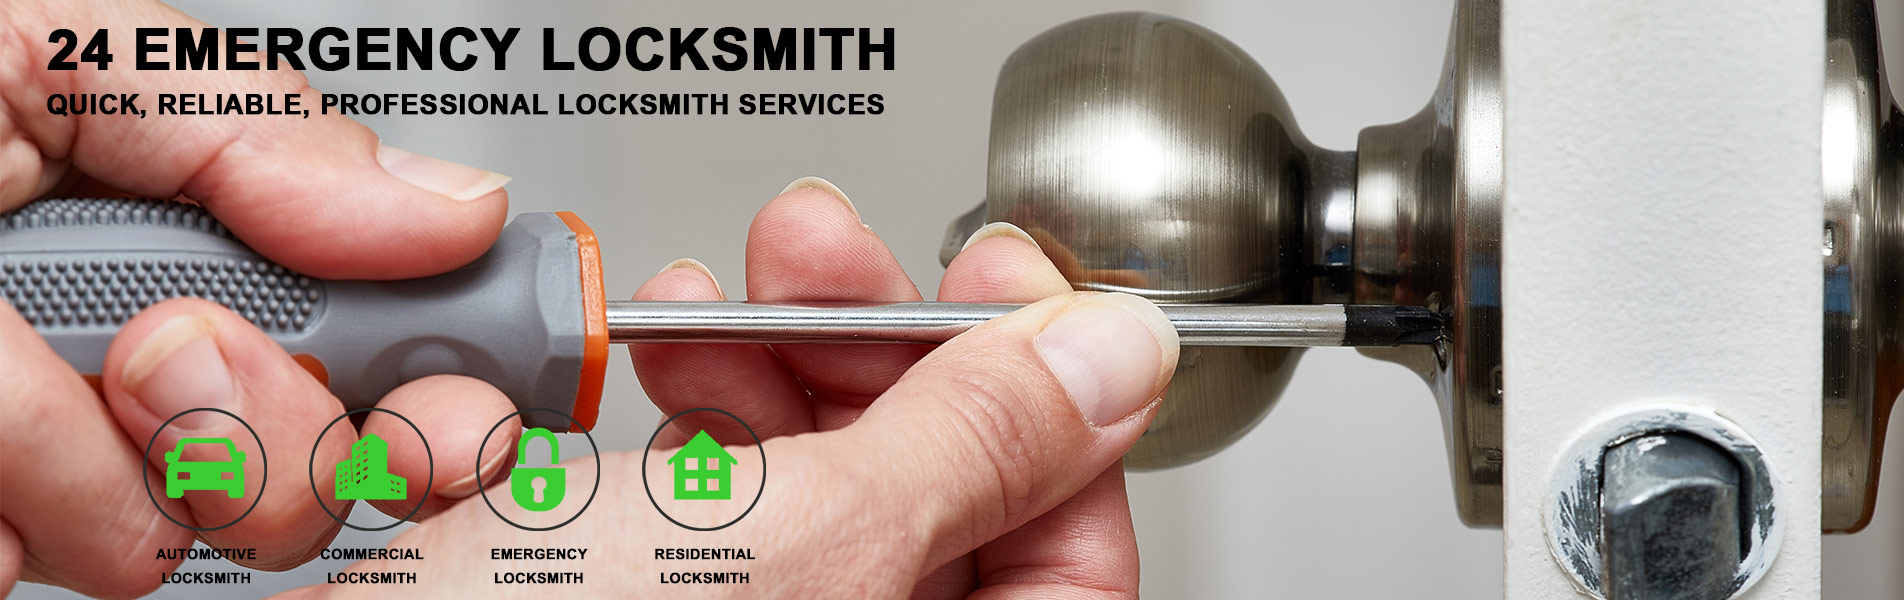 Expert Locksmith Services Phoenix, AZ 480-612-9226